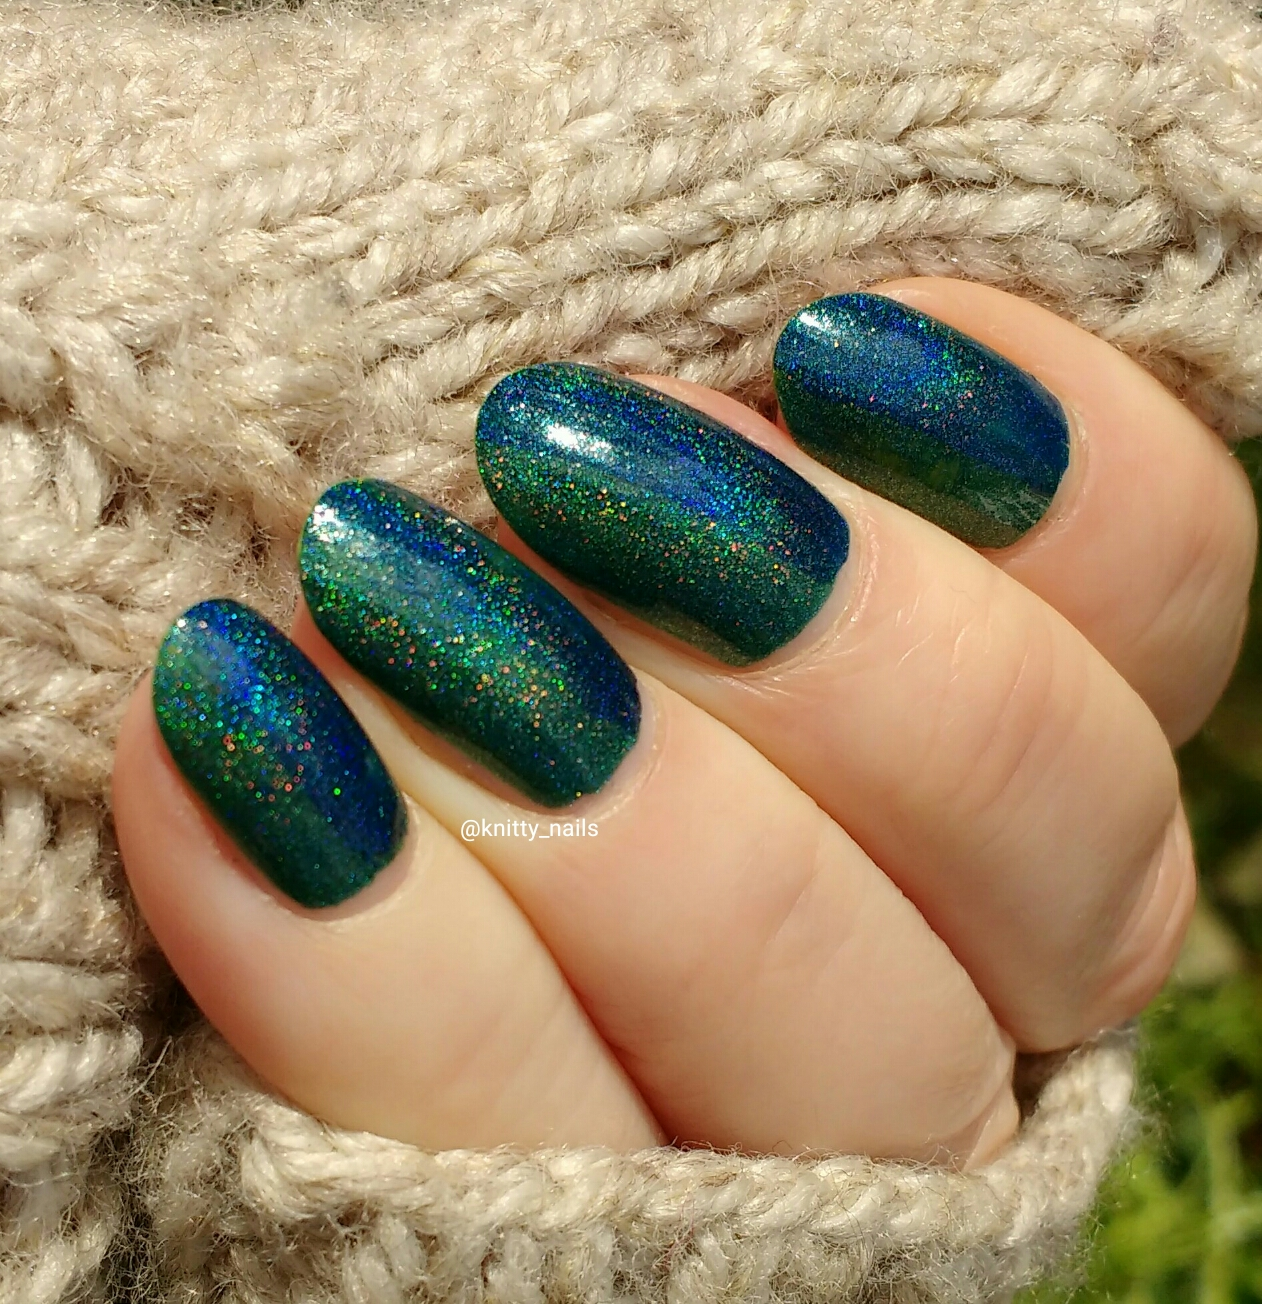 Knitty Nails: February Challenges - Mystical Nails